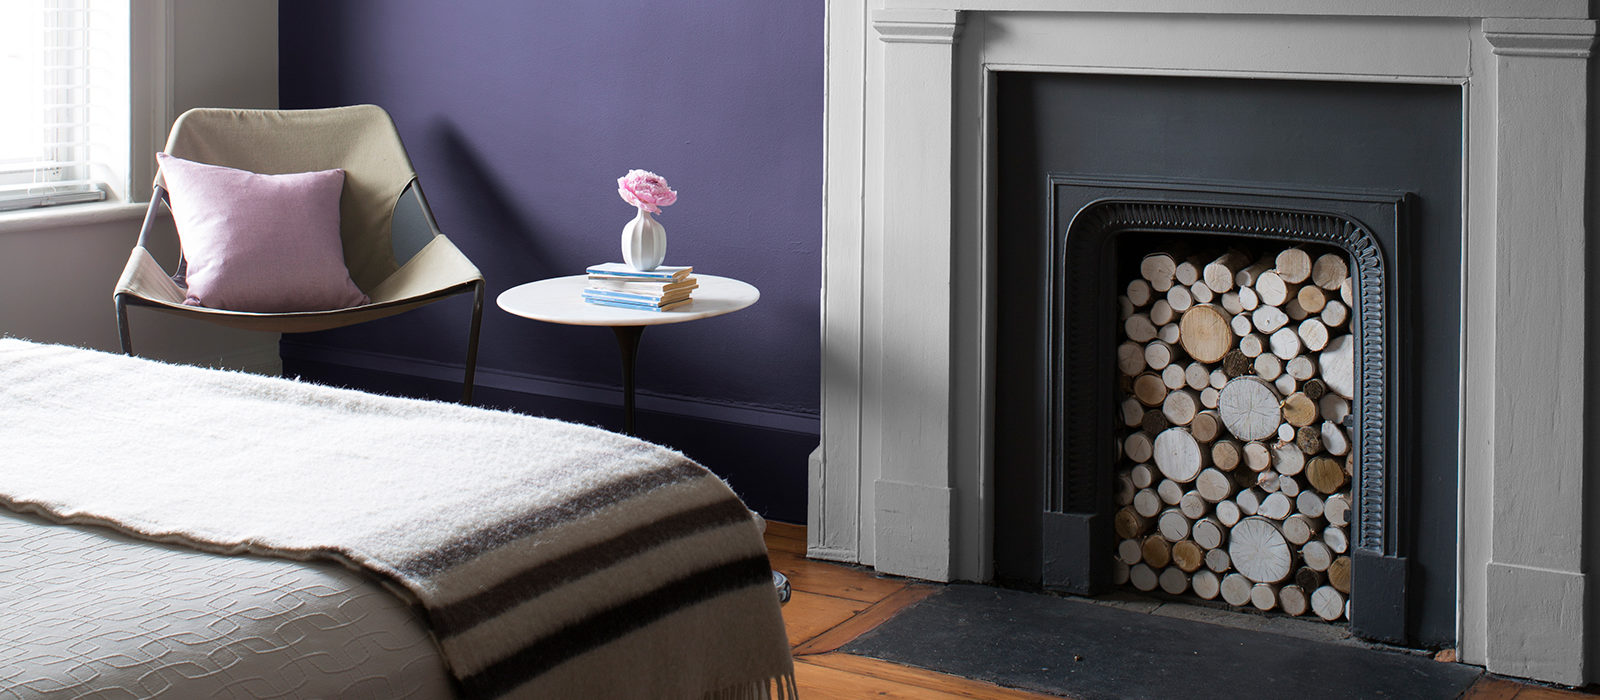 Purple and White Bedroom with Fireplace